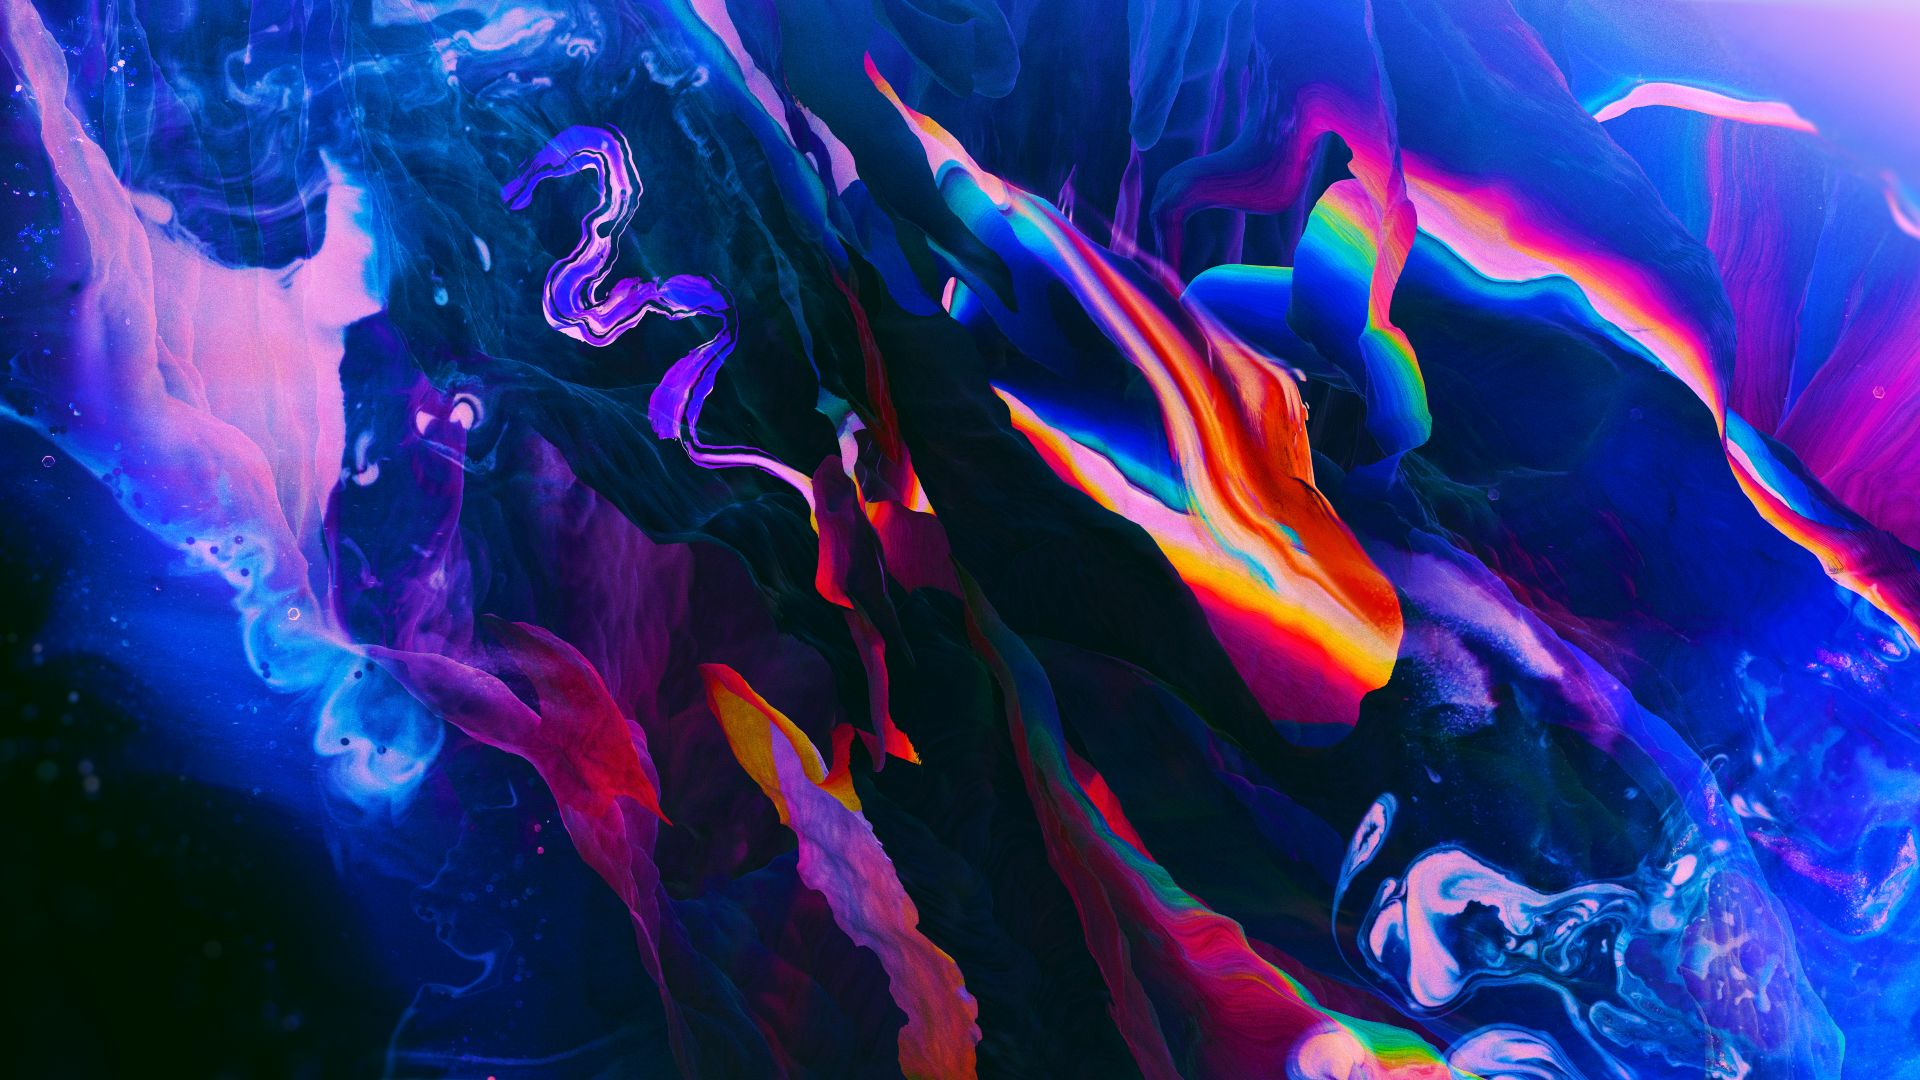 abstract, colorful, 8K (horizontal)